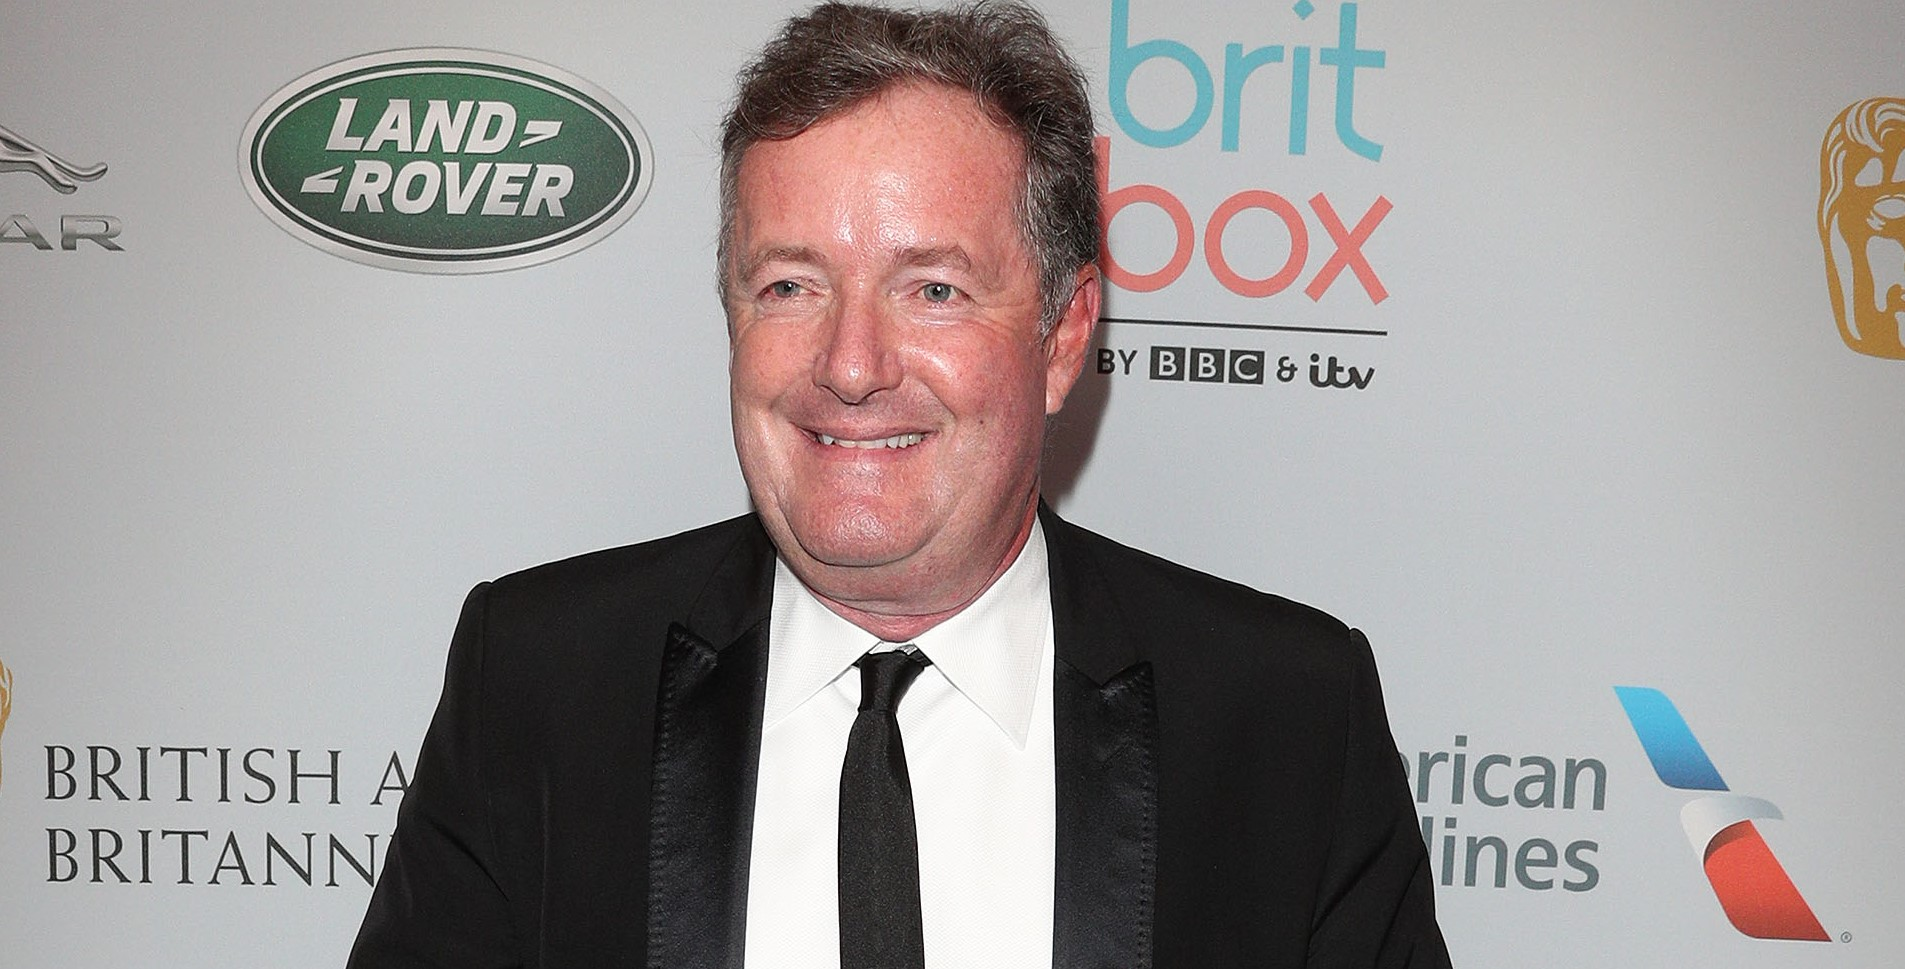 Piers Morgan hits back after he's called an unhinged troll on GMB